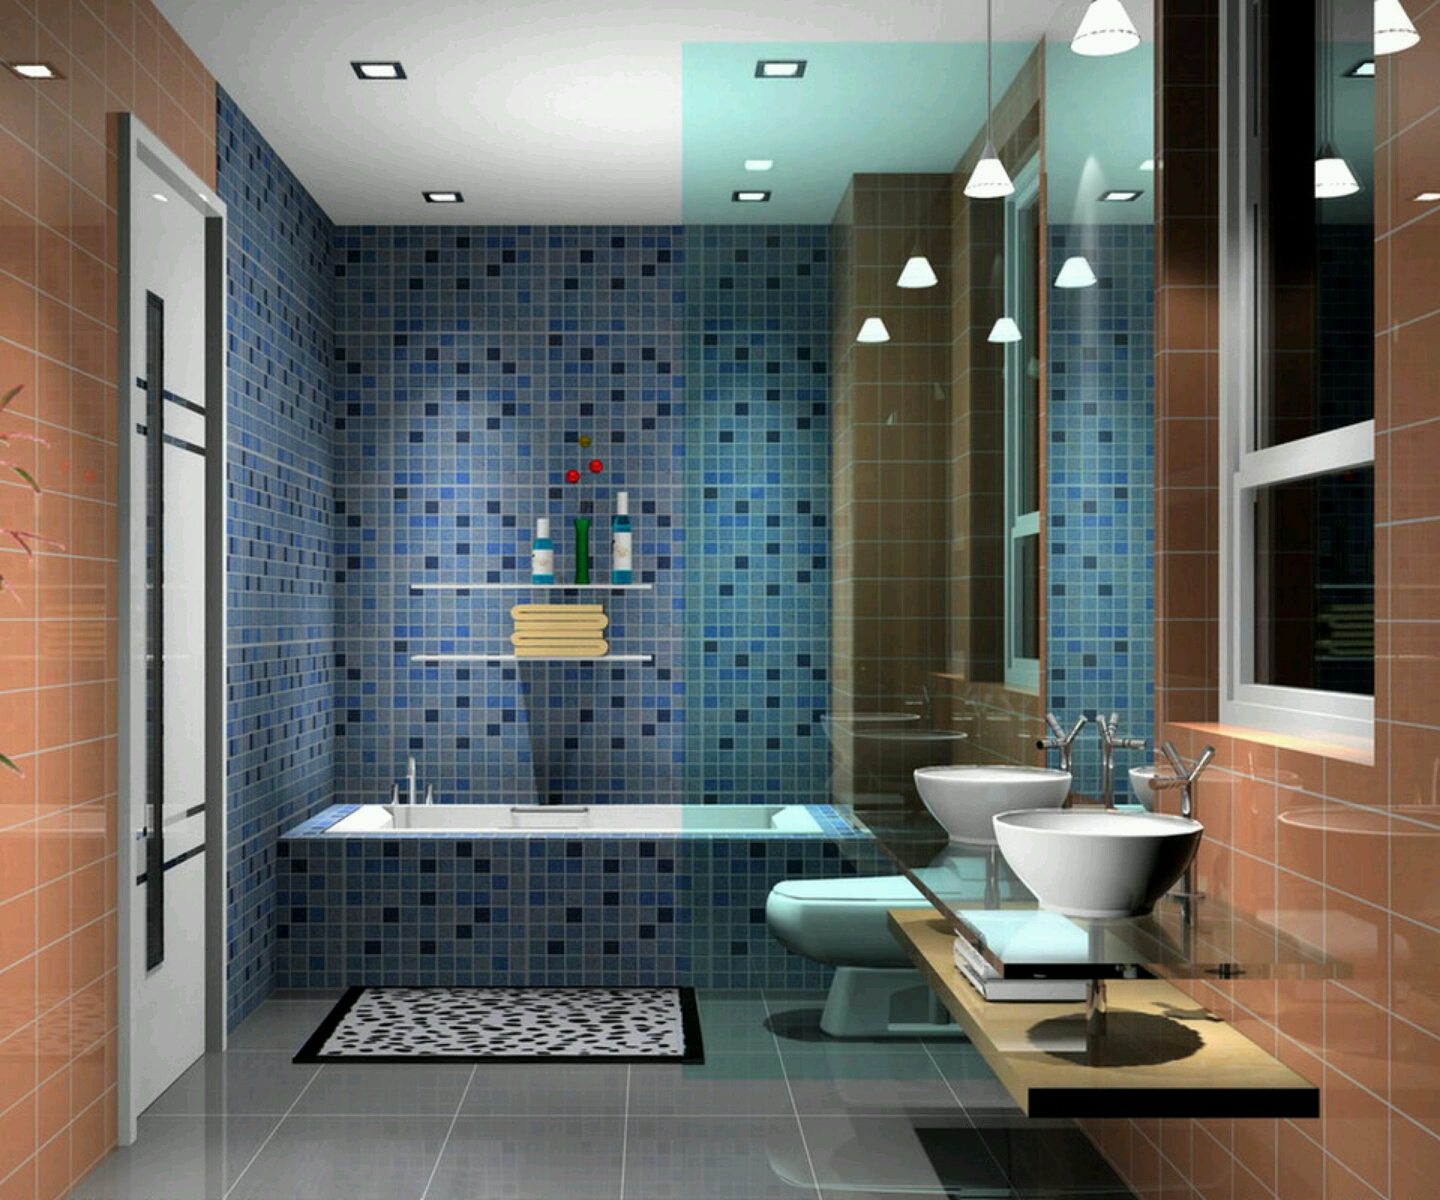 New home designs latest.: Modern bathrooms best designs ideas.